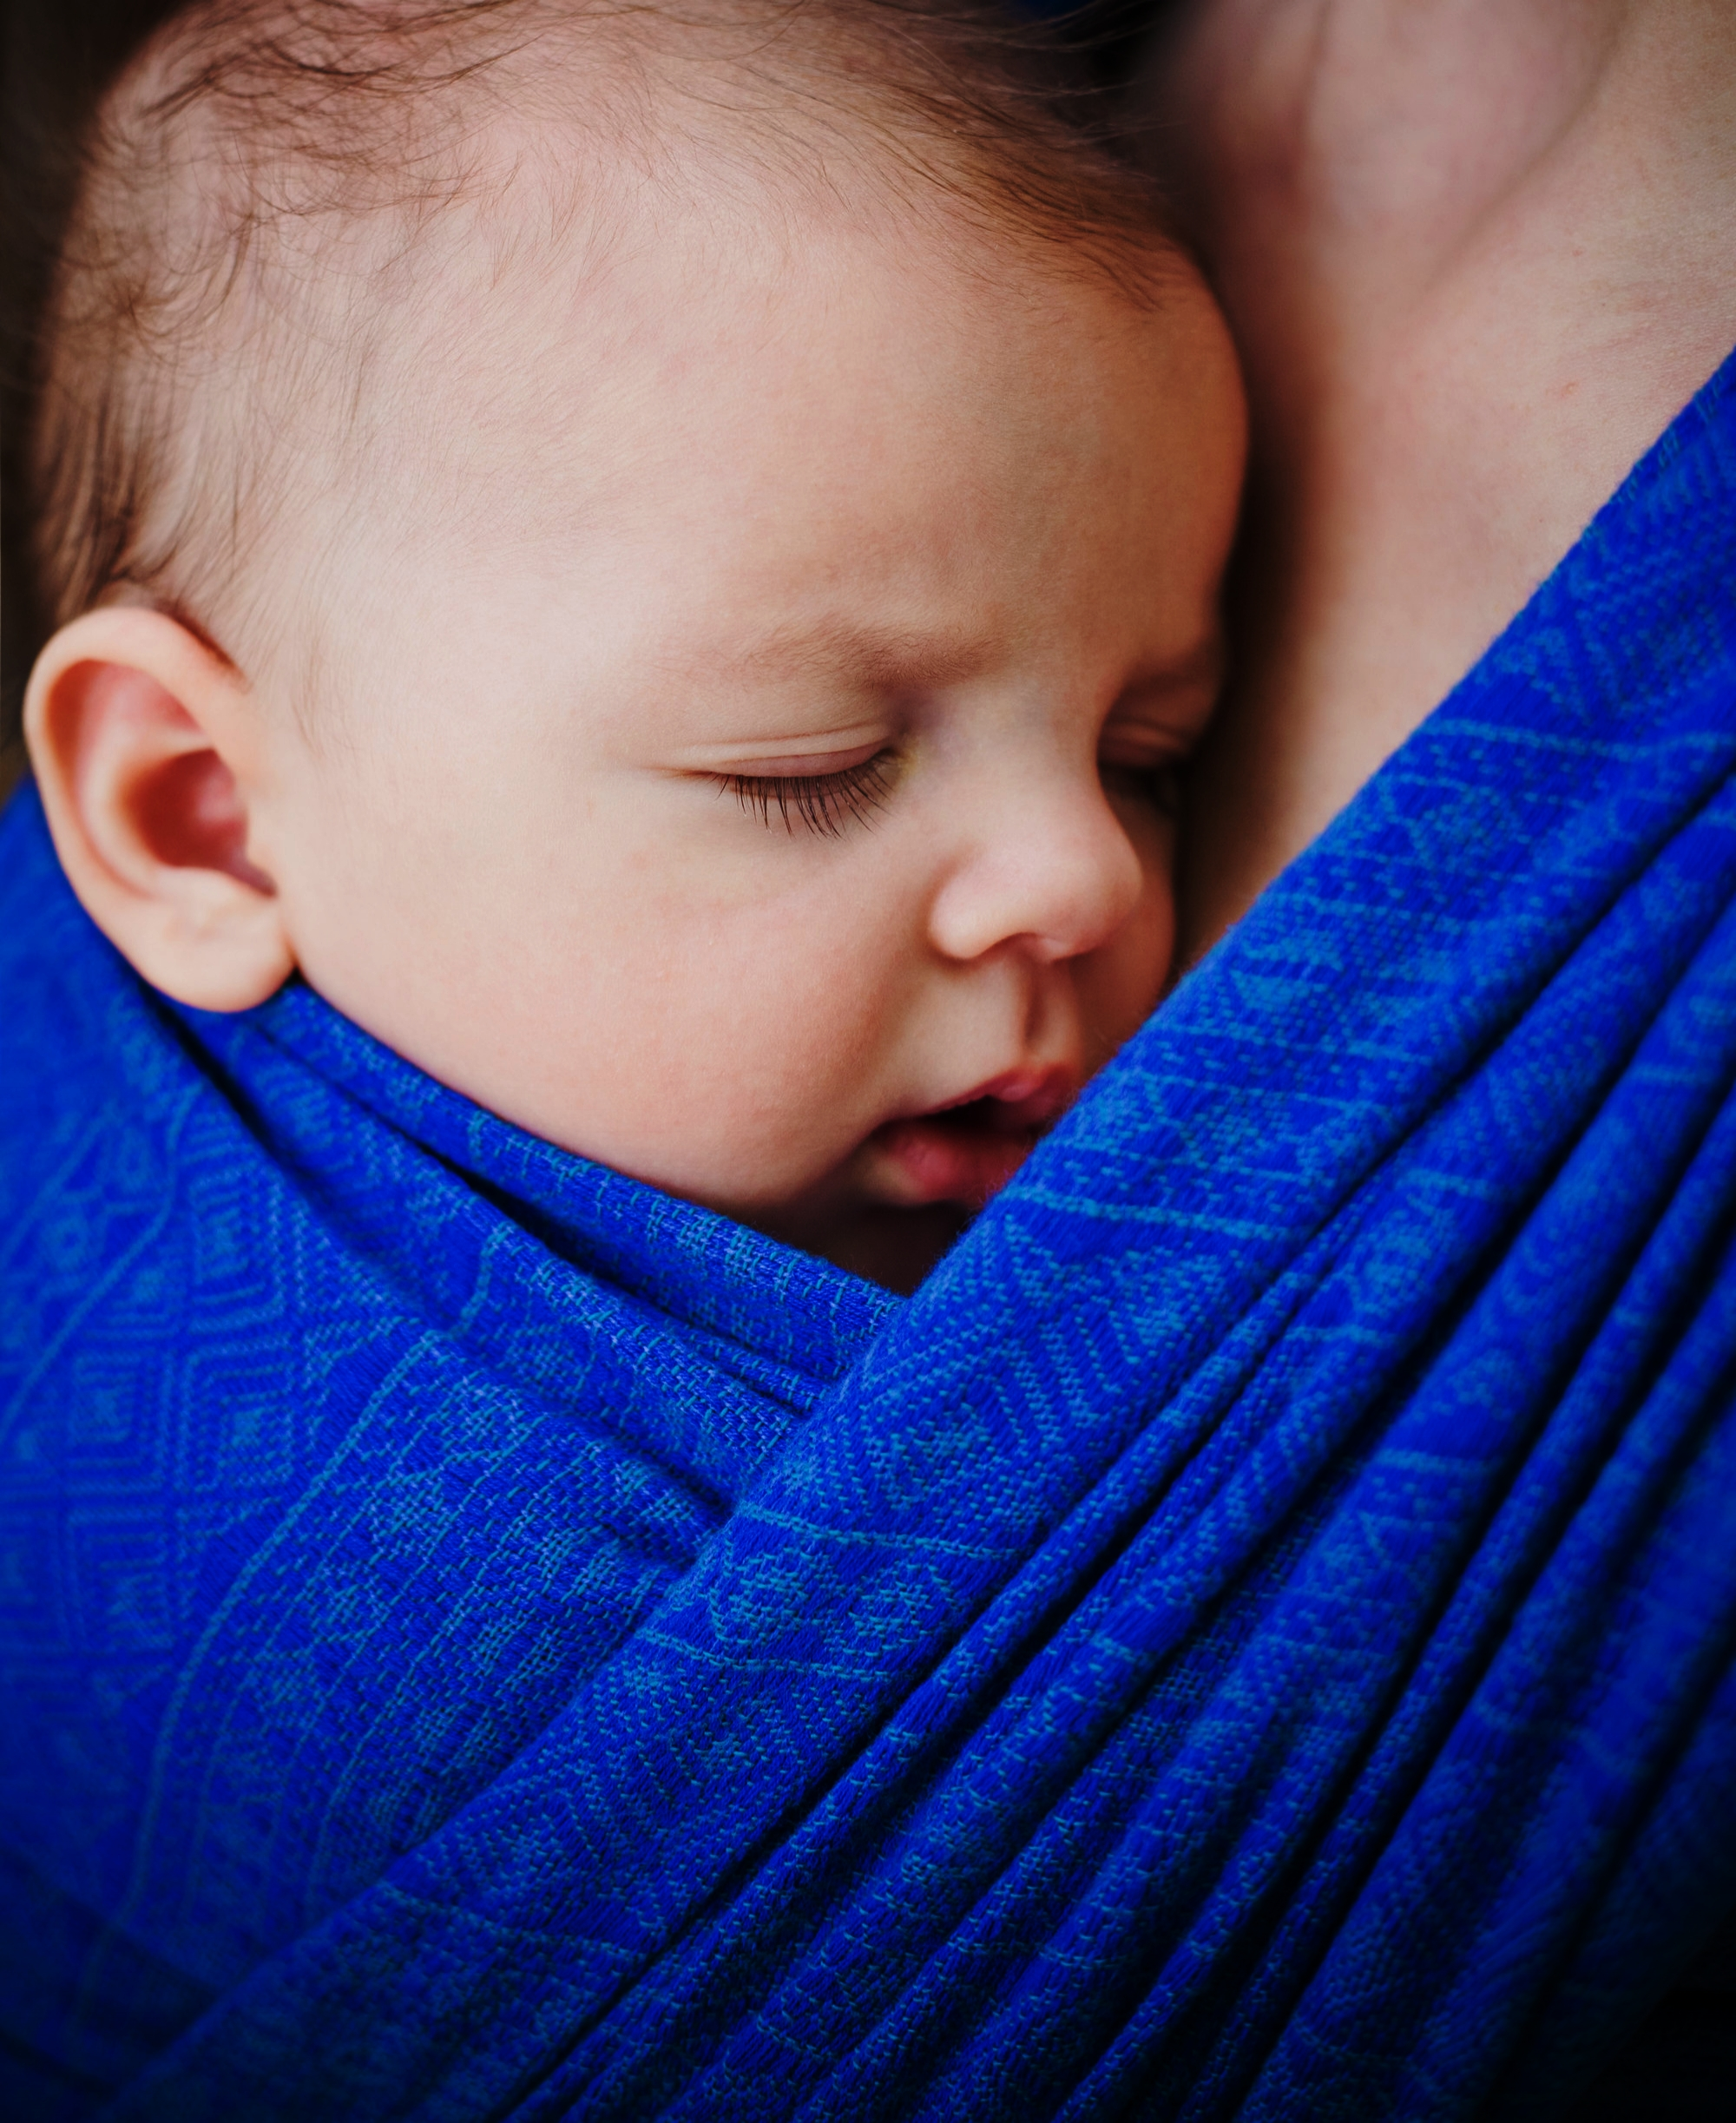 - Immediate skin-to-skin between Mom and Baby right after birth has proven to be extremely beneficial for the overall health of Mother and Child, and overwhelmingly beneficial for breastfeeding.